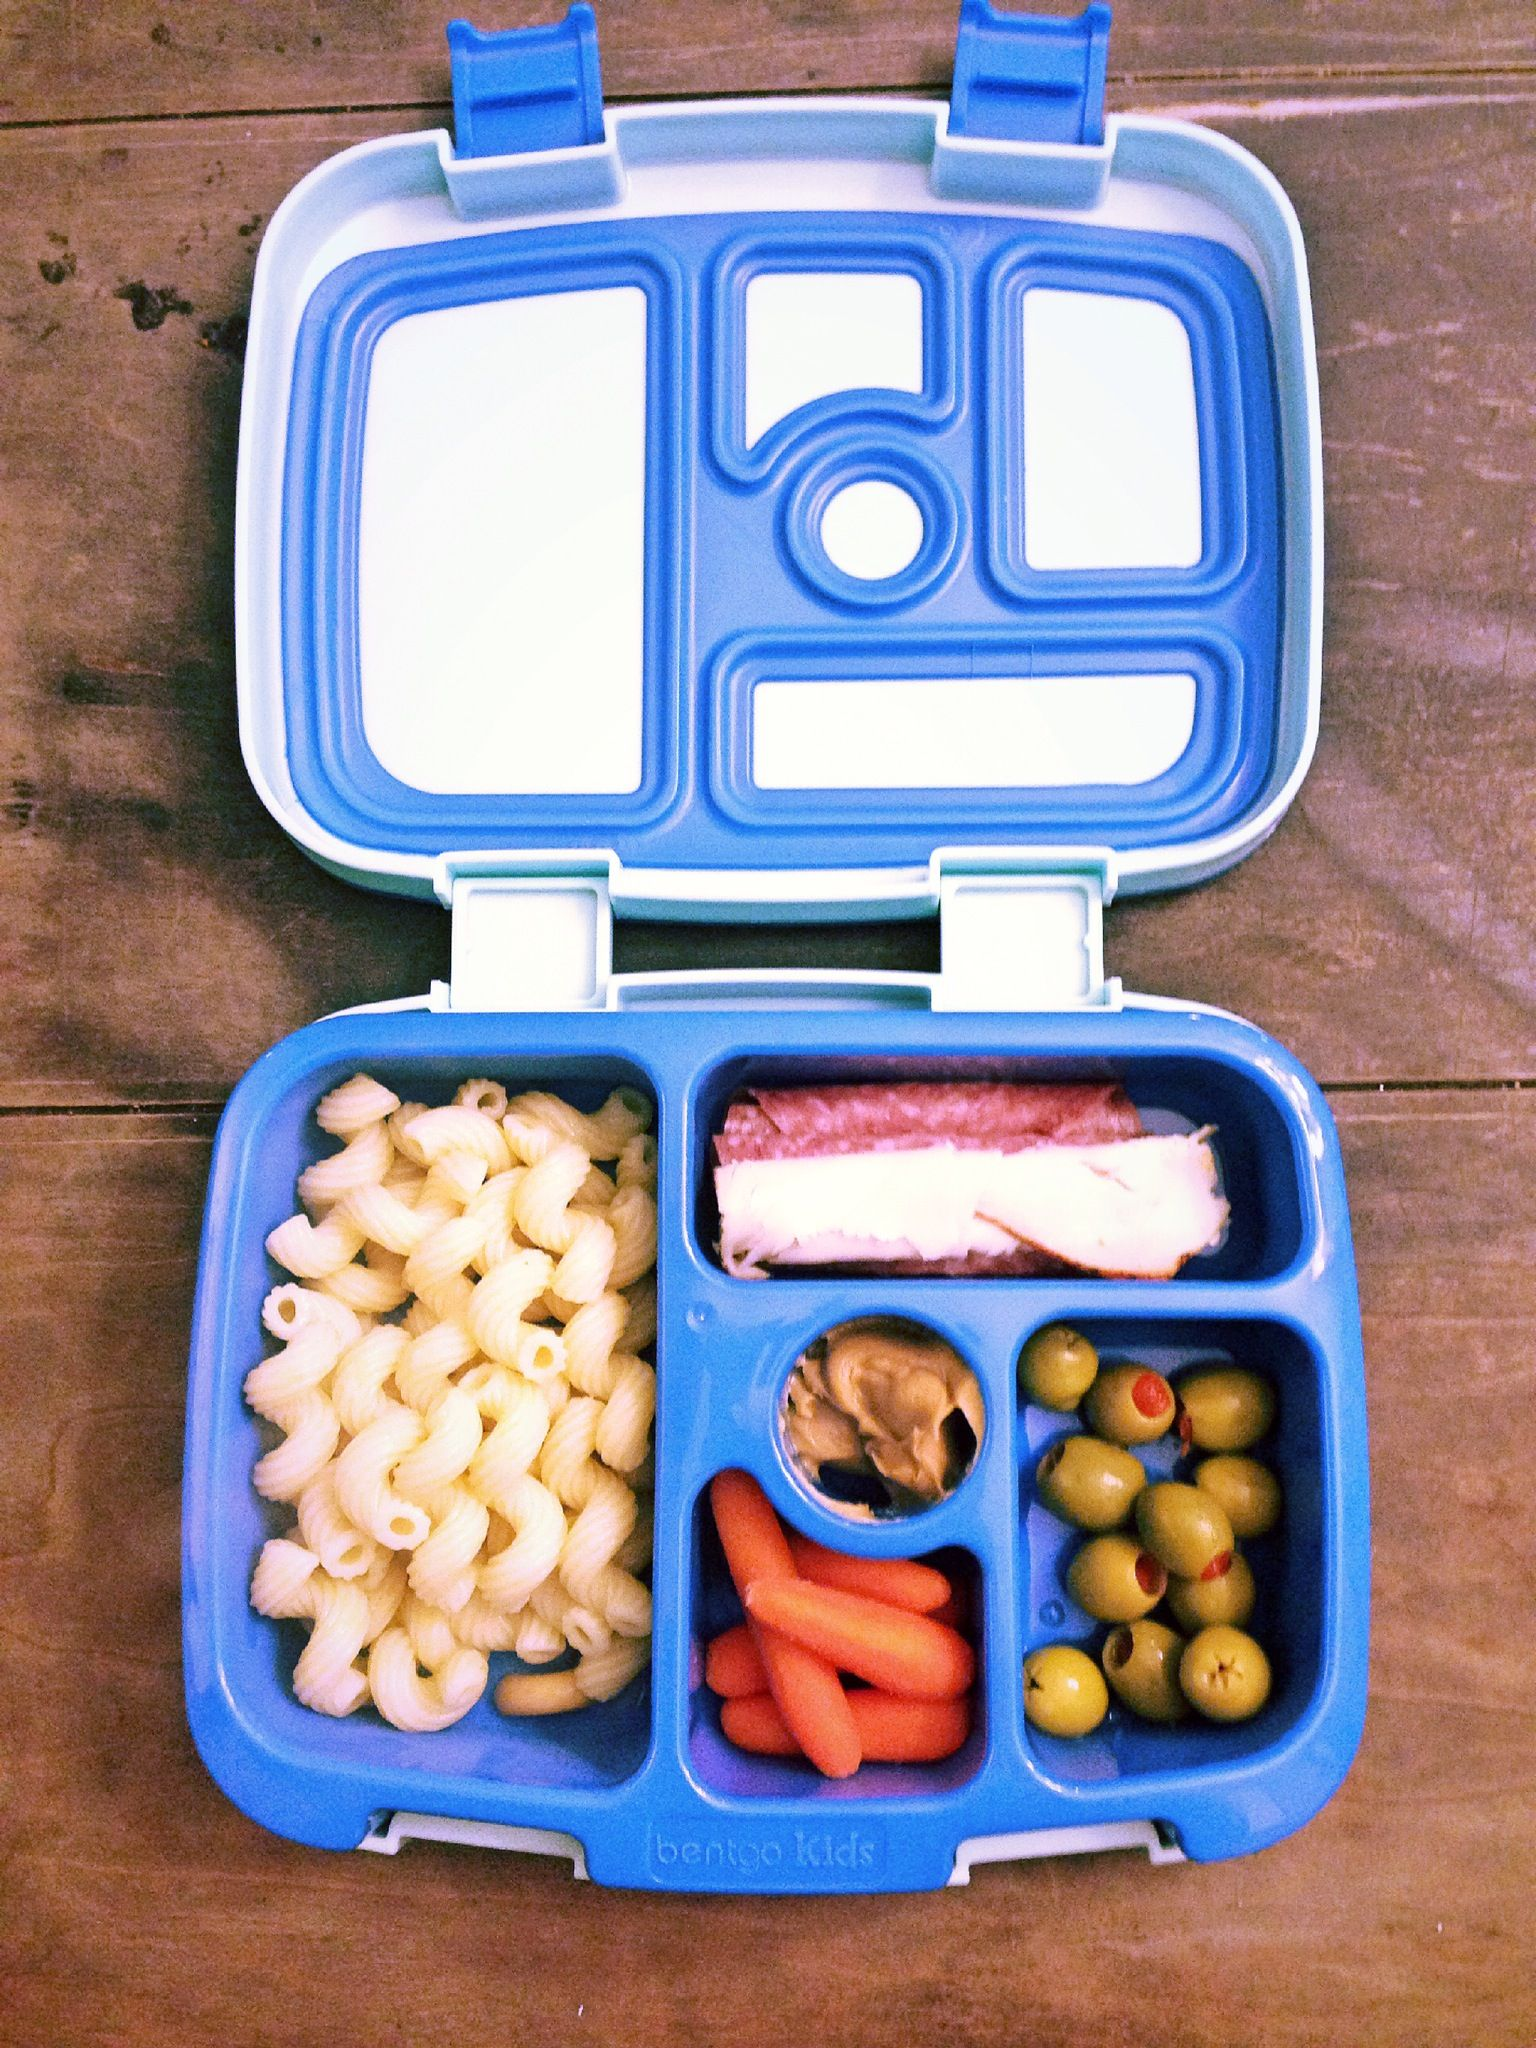 bentgo kids lunch box ideas from fit kids playground. Black Bedroom Furniture Sets. Home Design Ideas